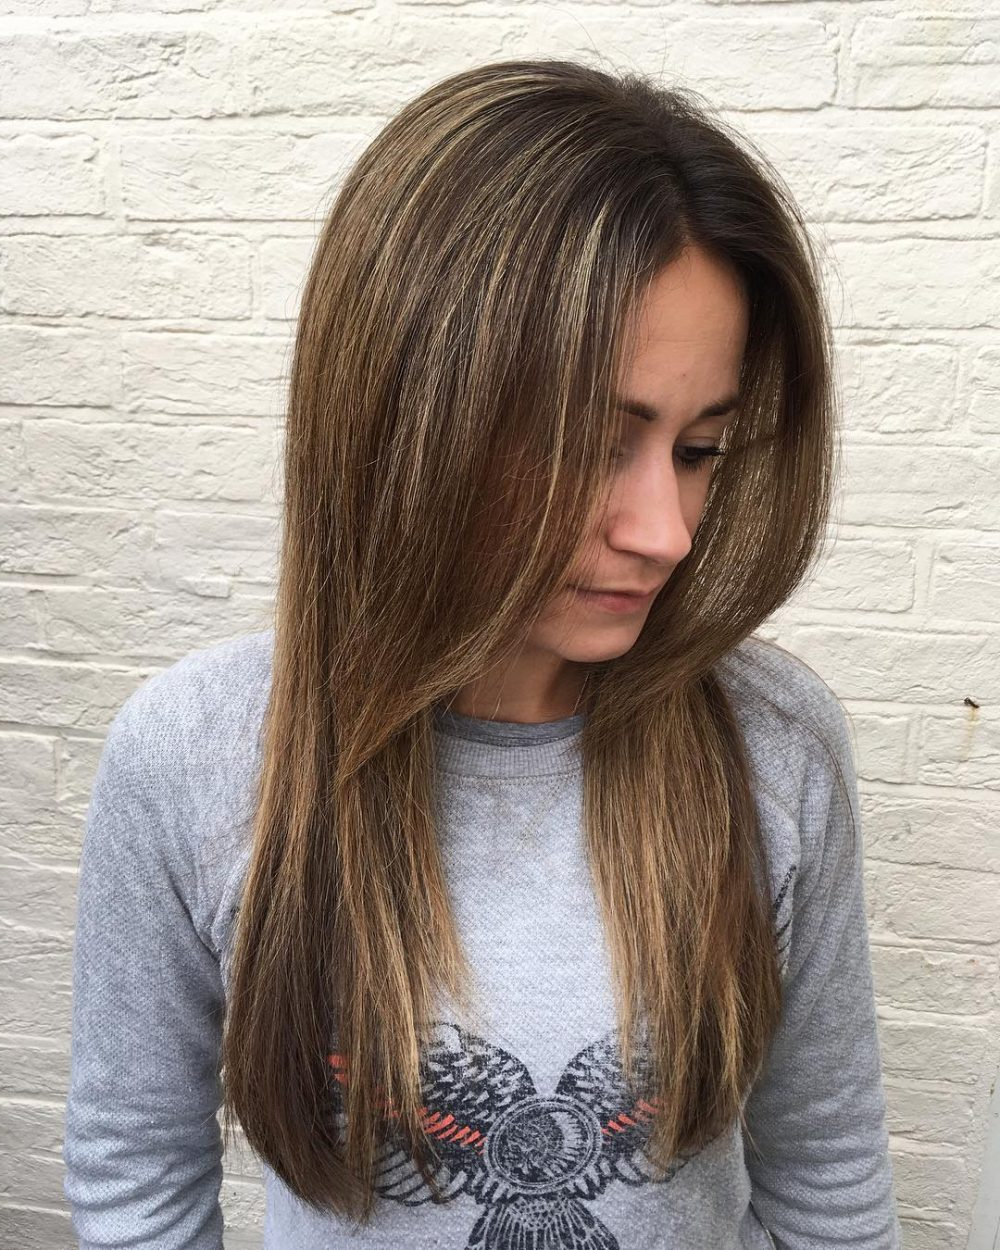 38 Flattering Examples Of Long Hair With Bangs With Recent Loose Flowy Curls Hairstyles With Long Side Bangs (View 10 of 20)